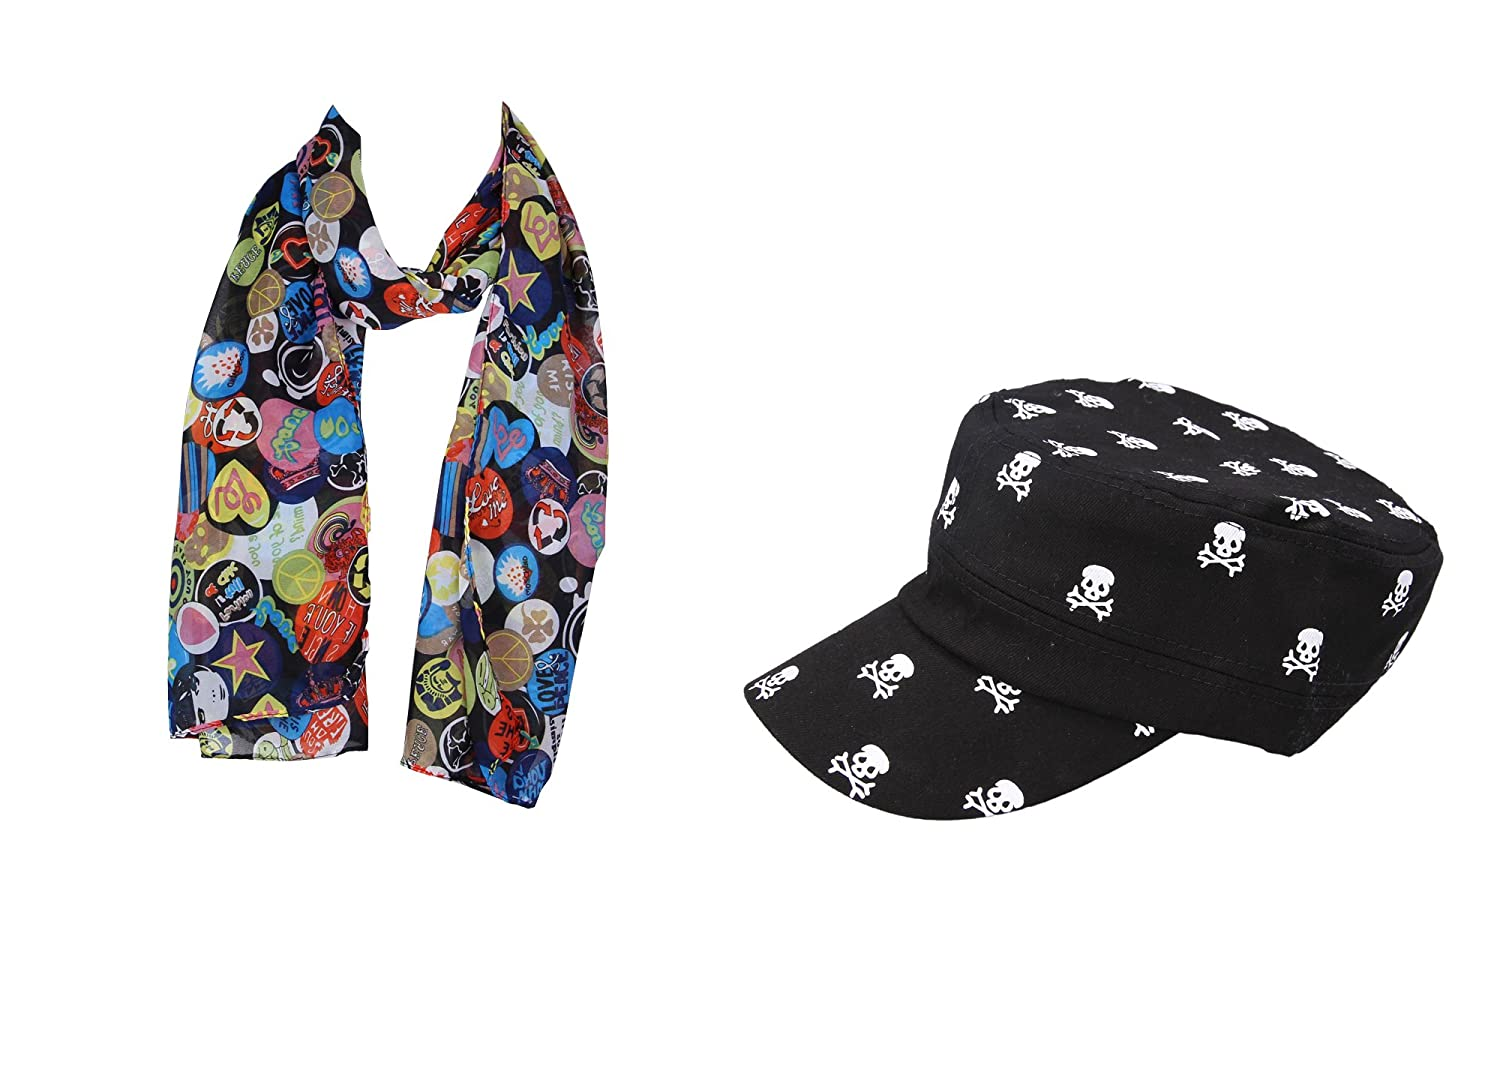 JTC Women Printed Scarf and Skull Black Baseball Cap Set